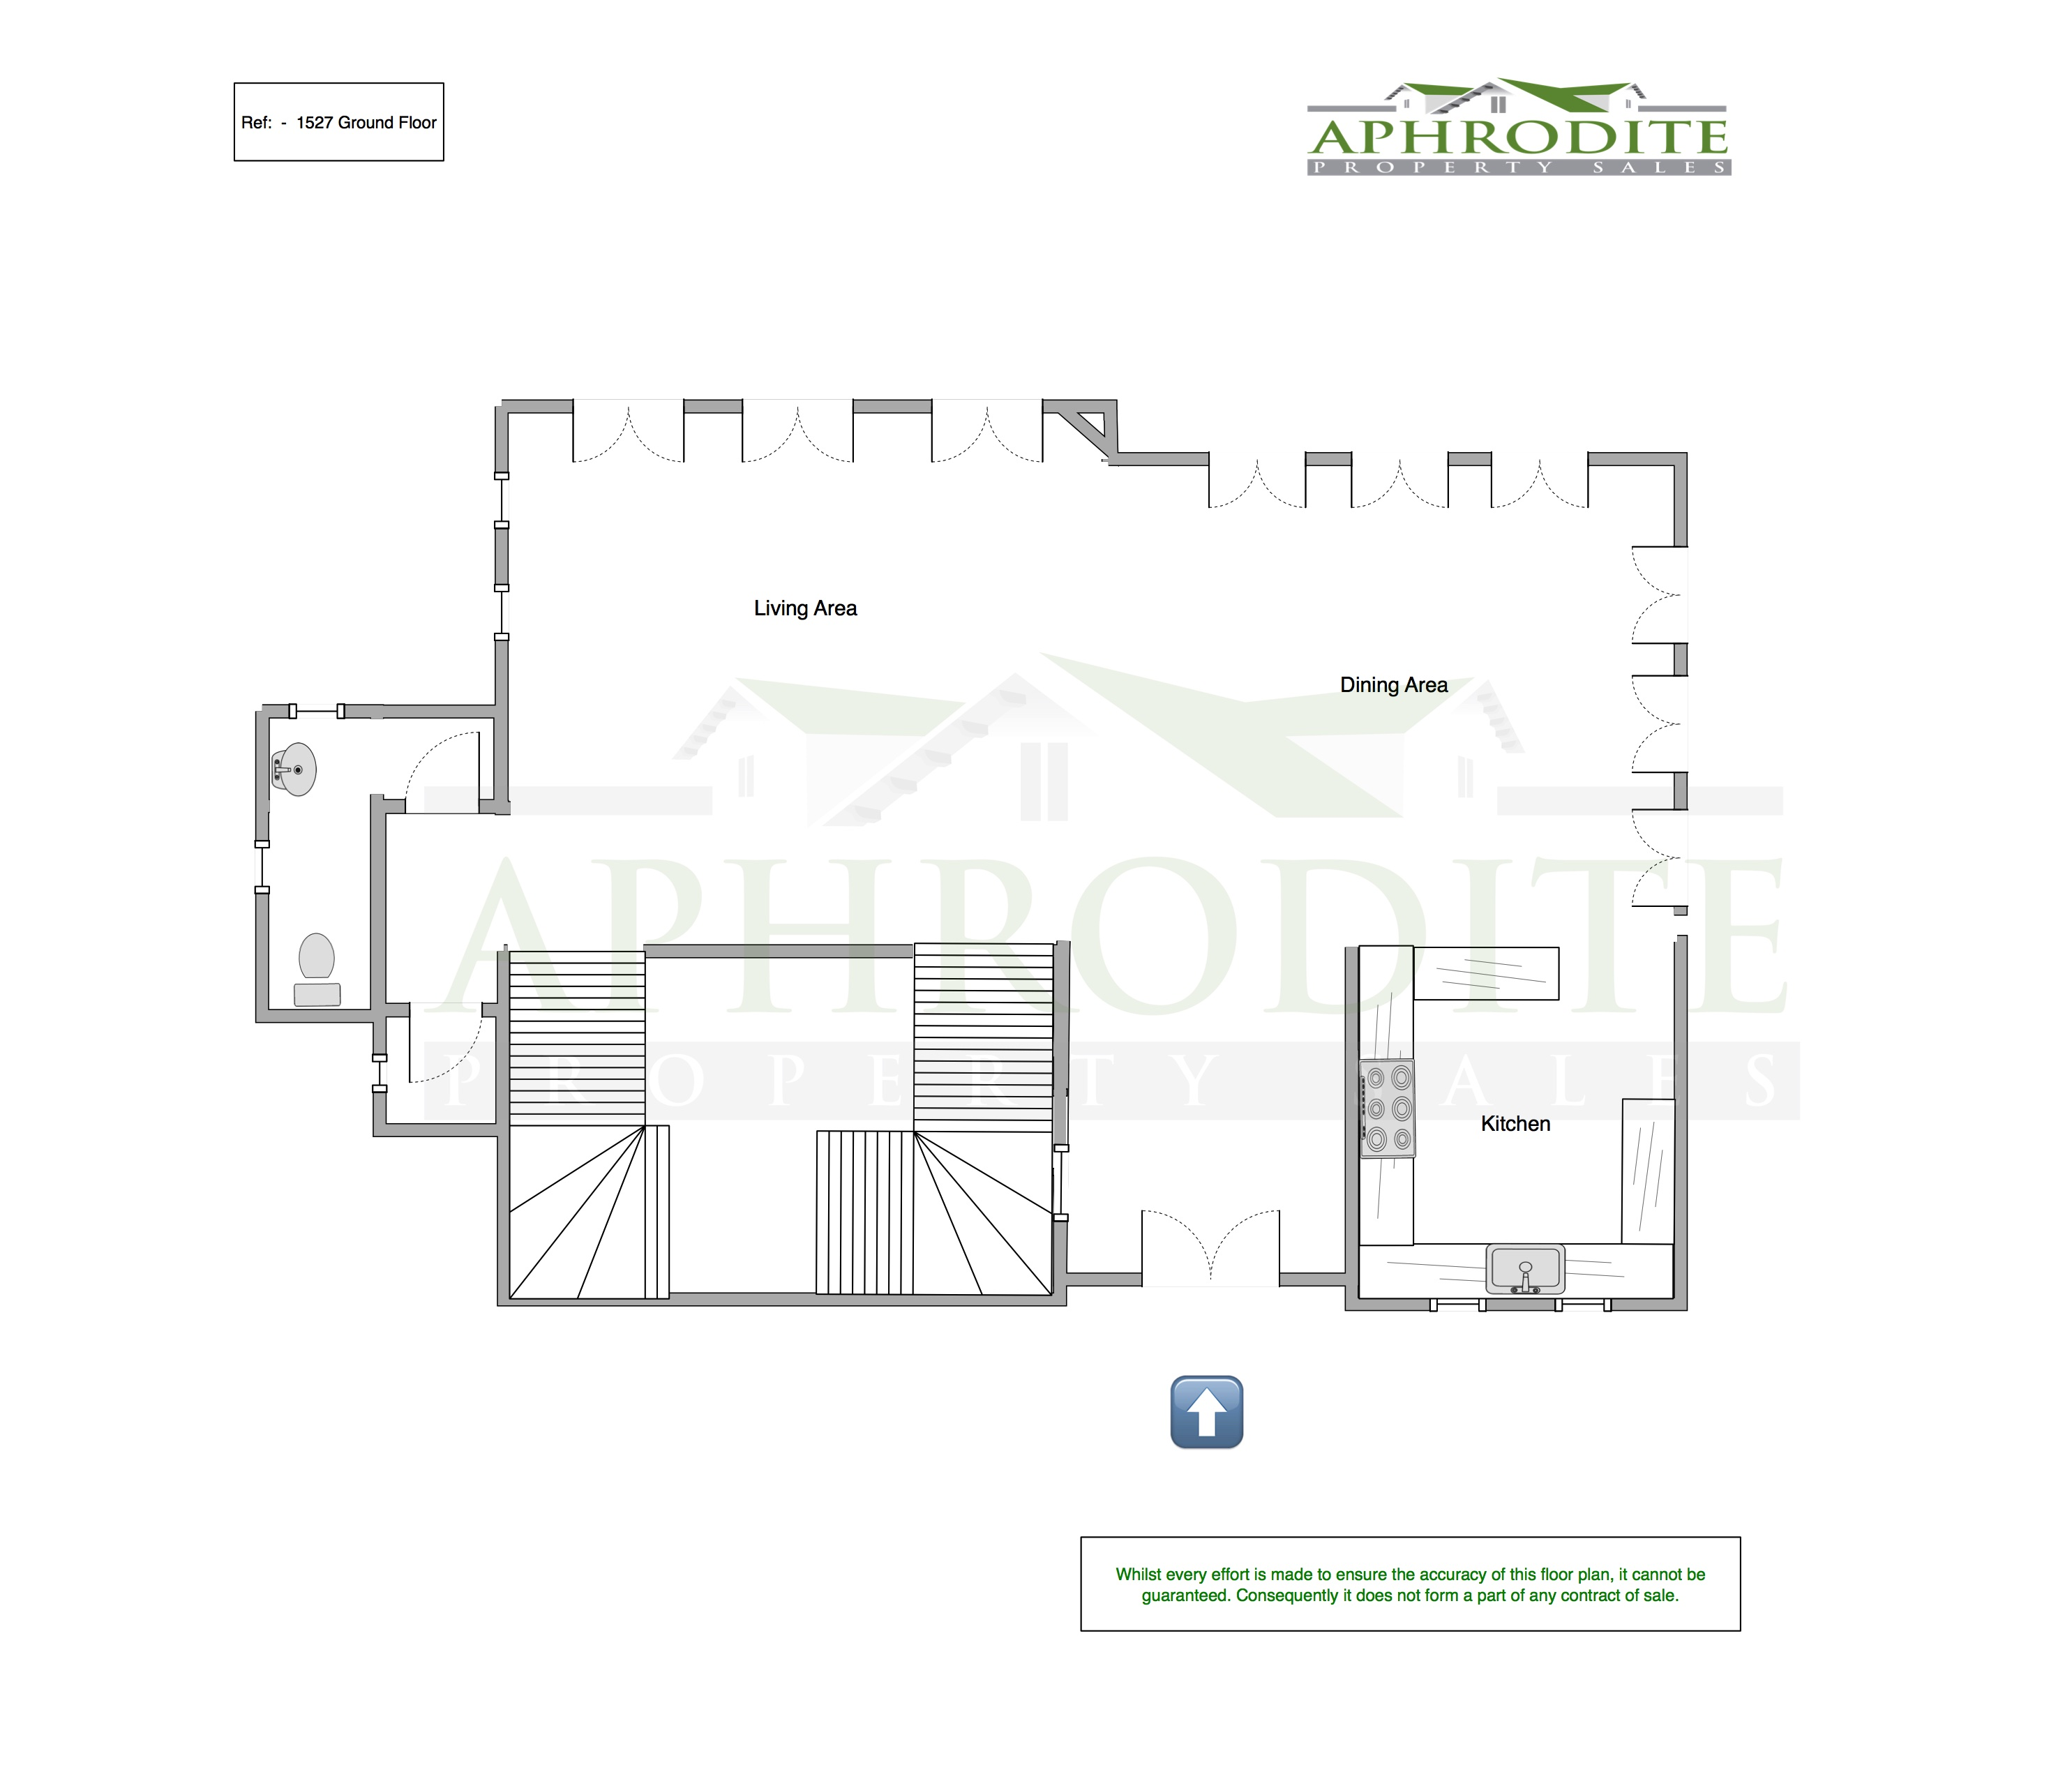 1527 - 4 Bedroom Villa - Aphrodite Hills floorplan 3